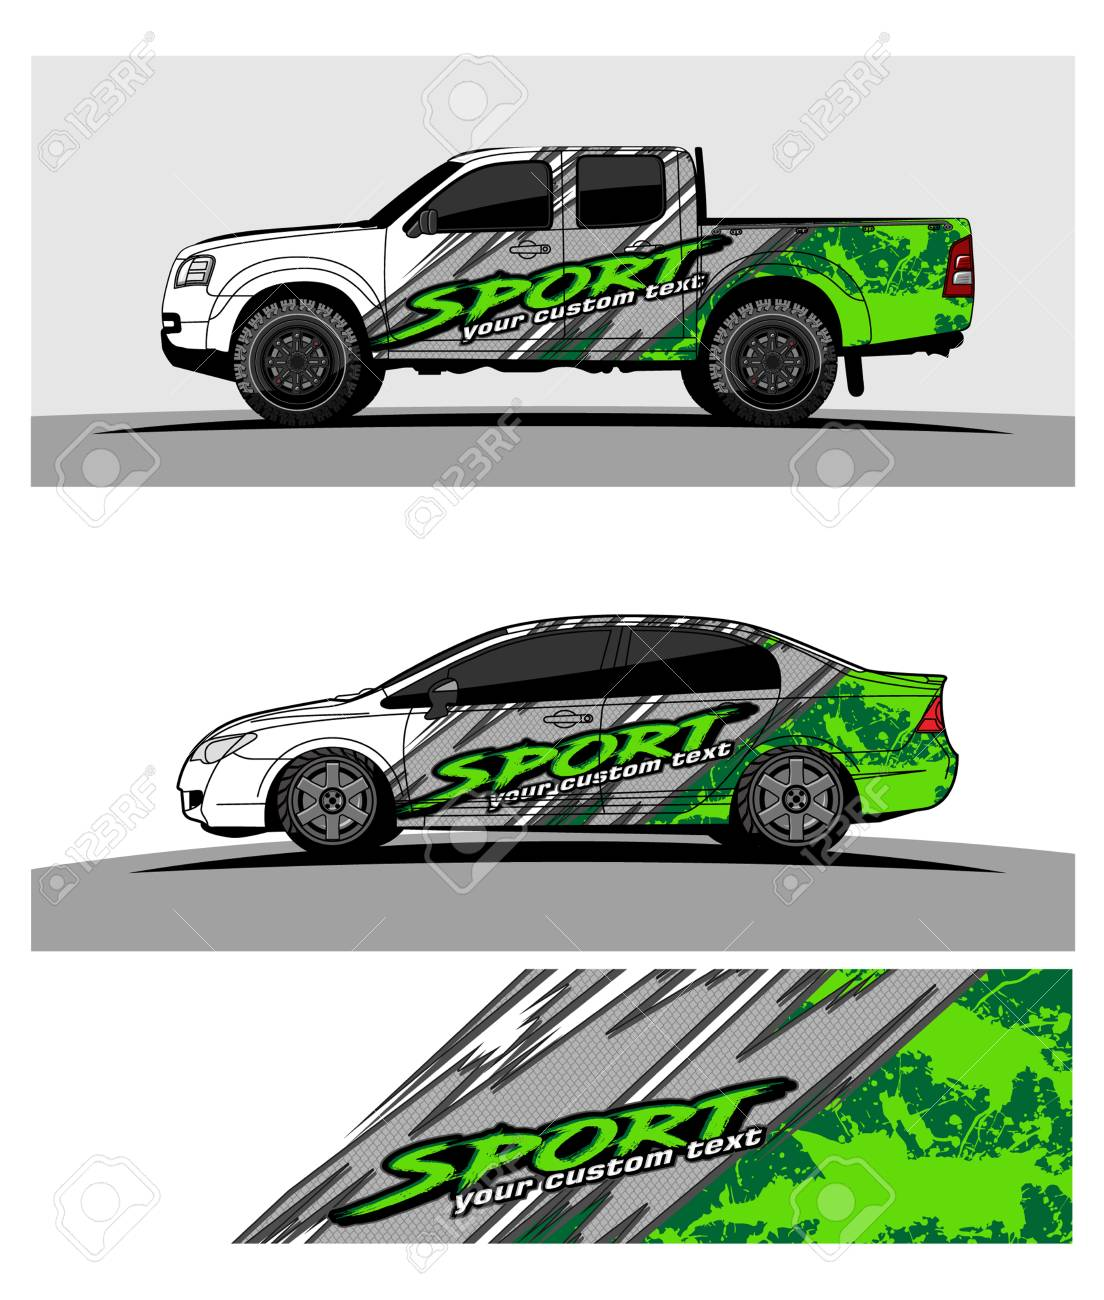 Car graphic vector abstract racing shape design for vehicle vinyl wrap stock vector 100260718